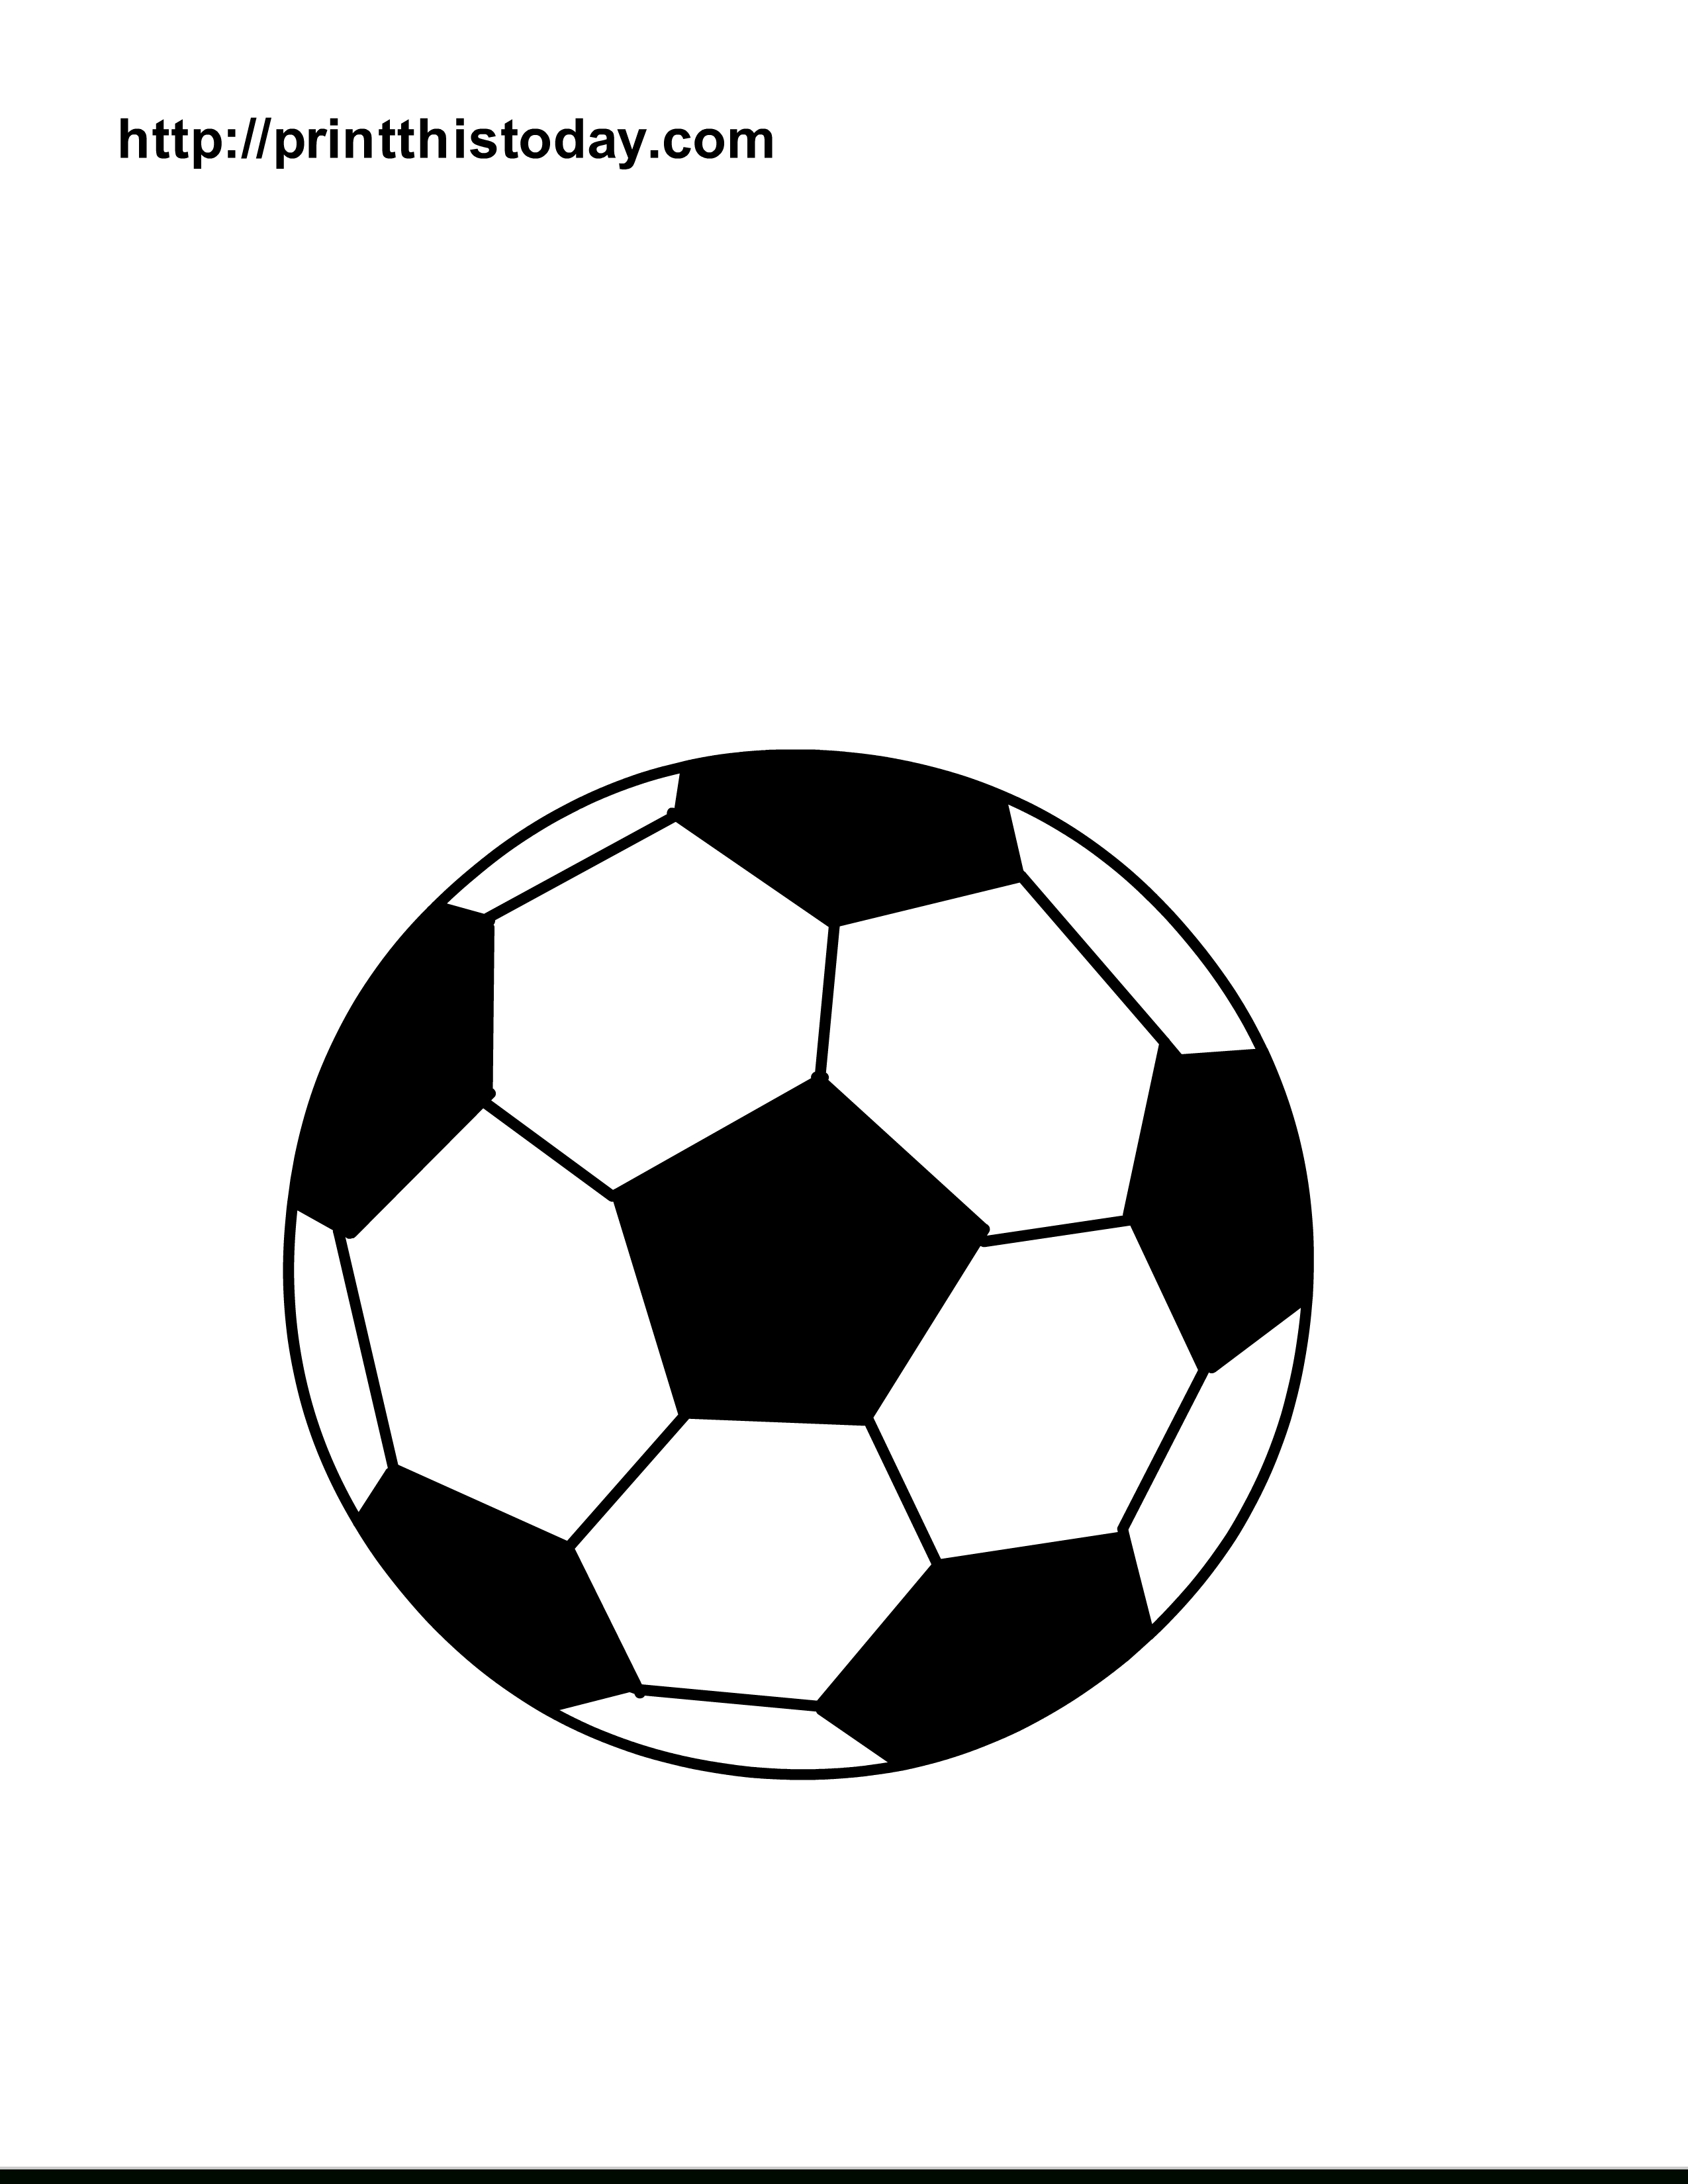 Free Printable Sports Balls Coloring Pages - Free Printable Sports Bookmarks